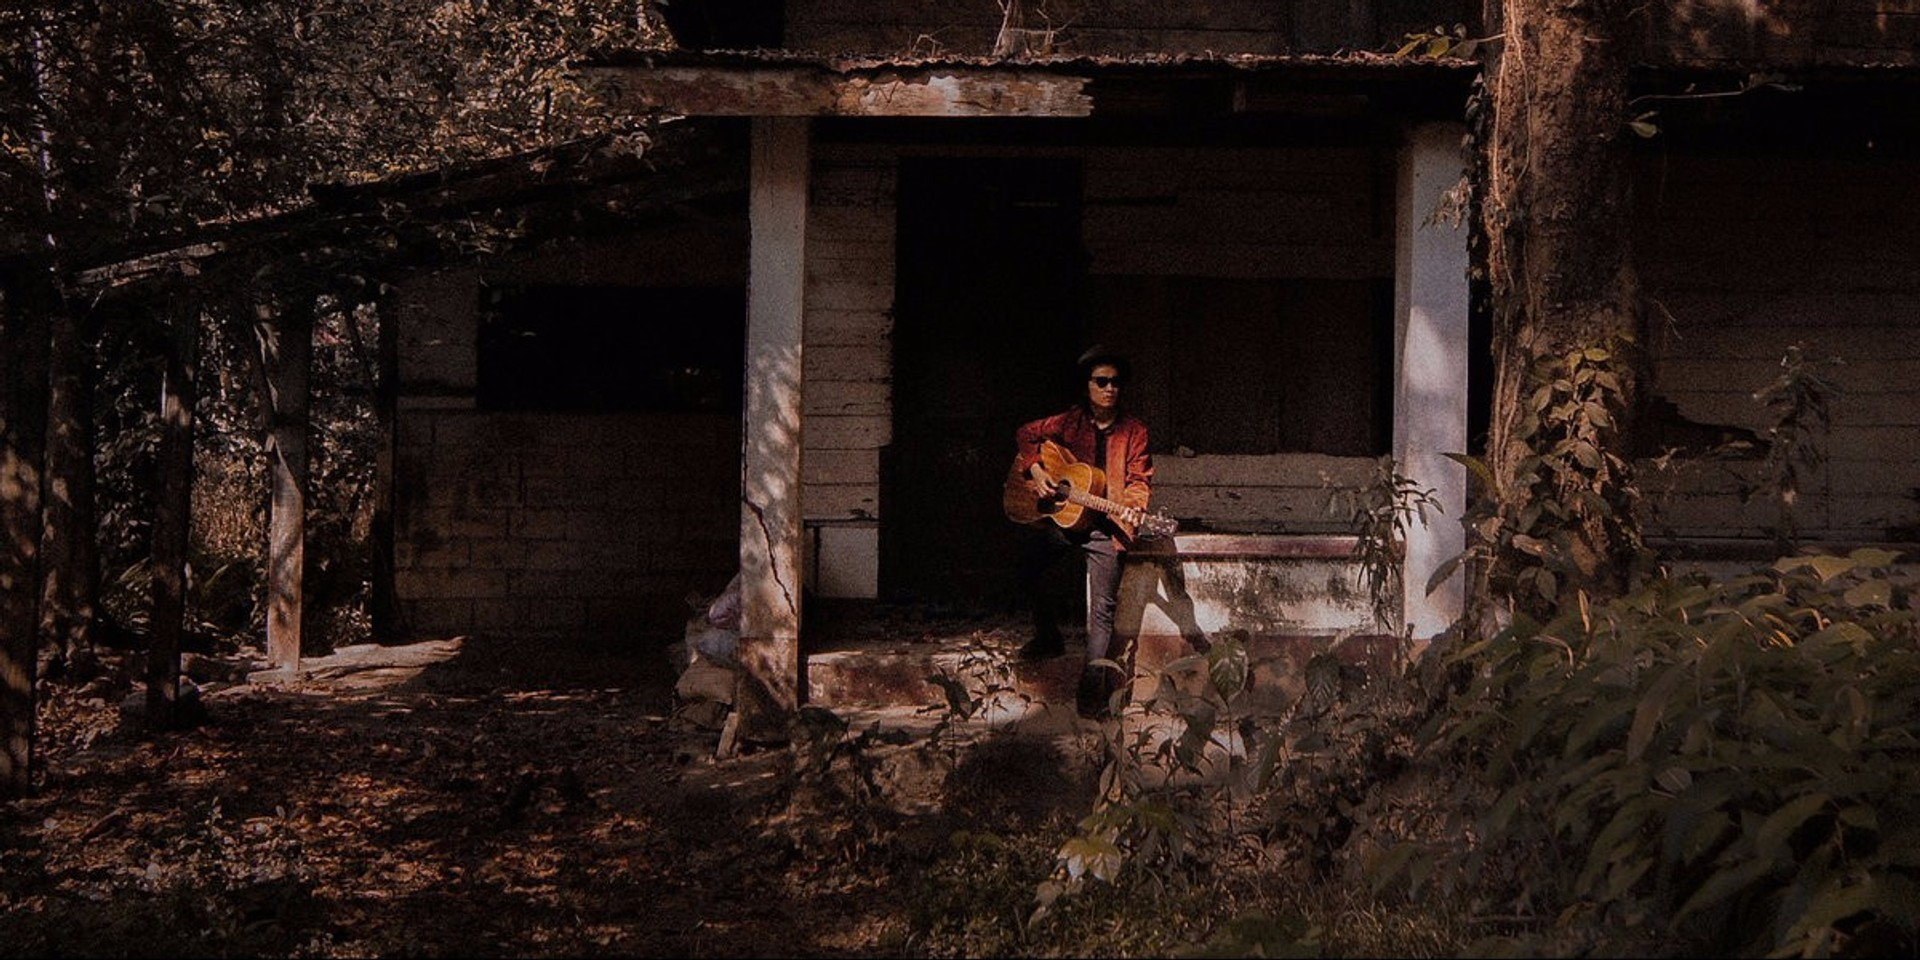 """Ian Penn teases upcoming album """"Water from the Creek"""" with new single"""